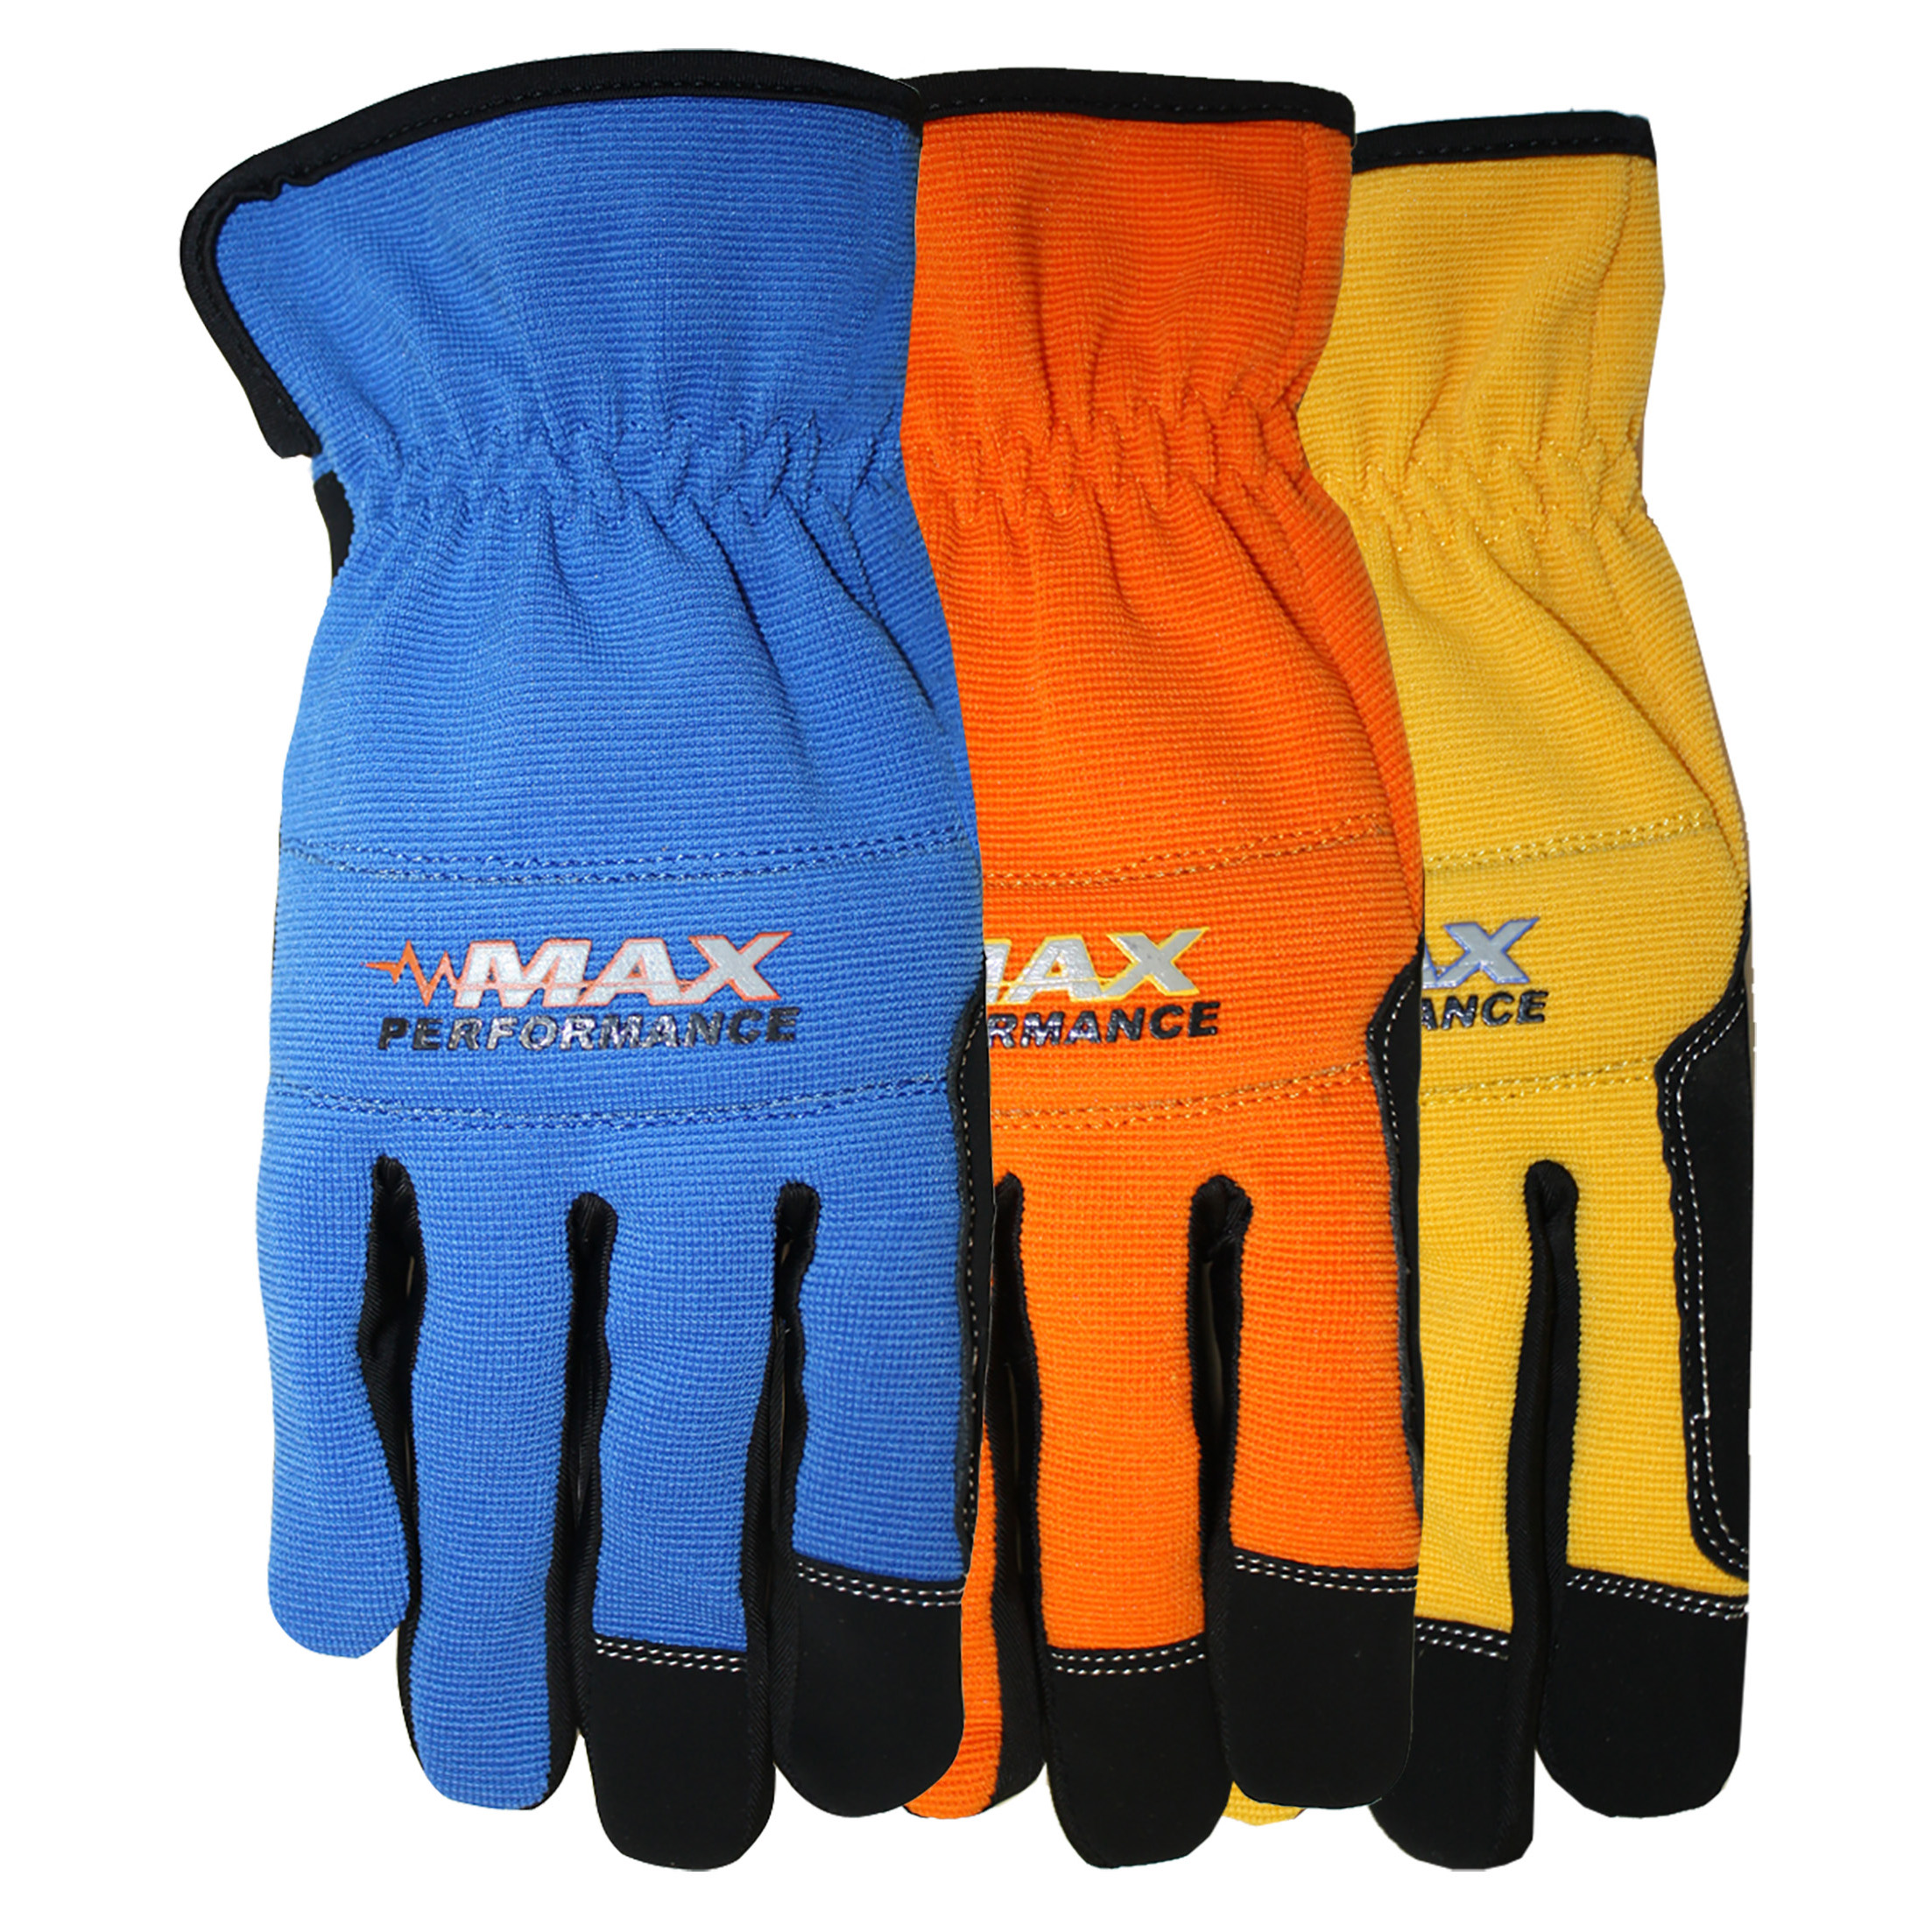 MidWest Quality Gloves HP Synthetic Leather Palm Gloves, Medium